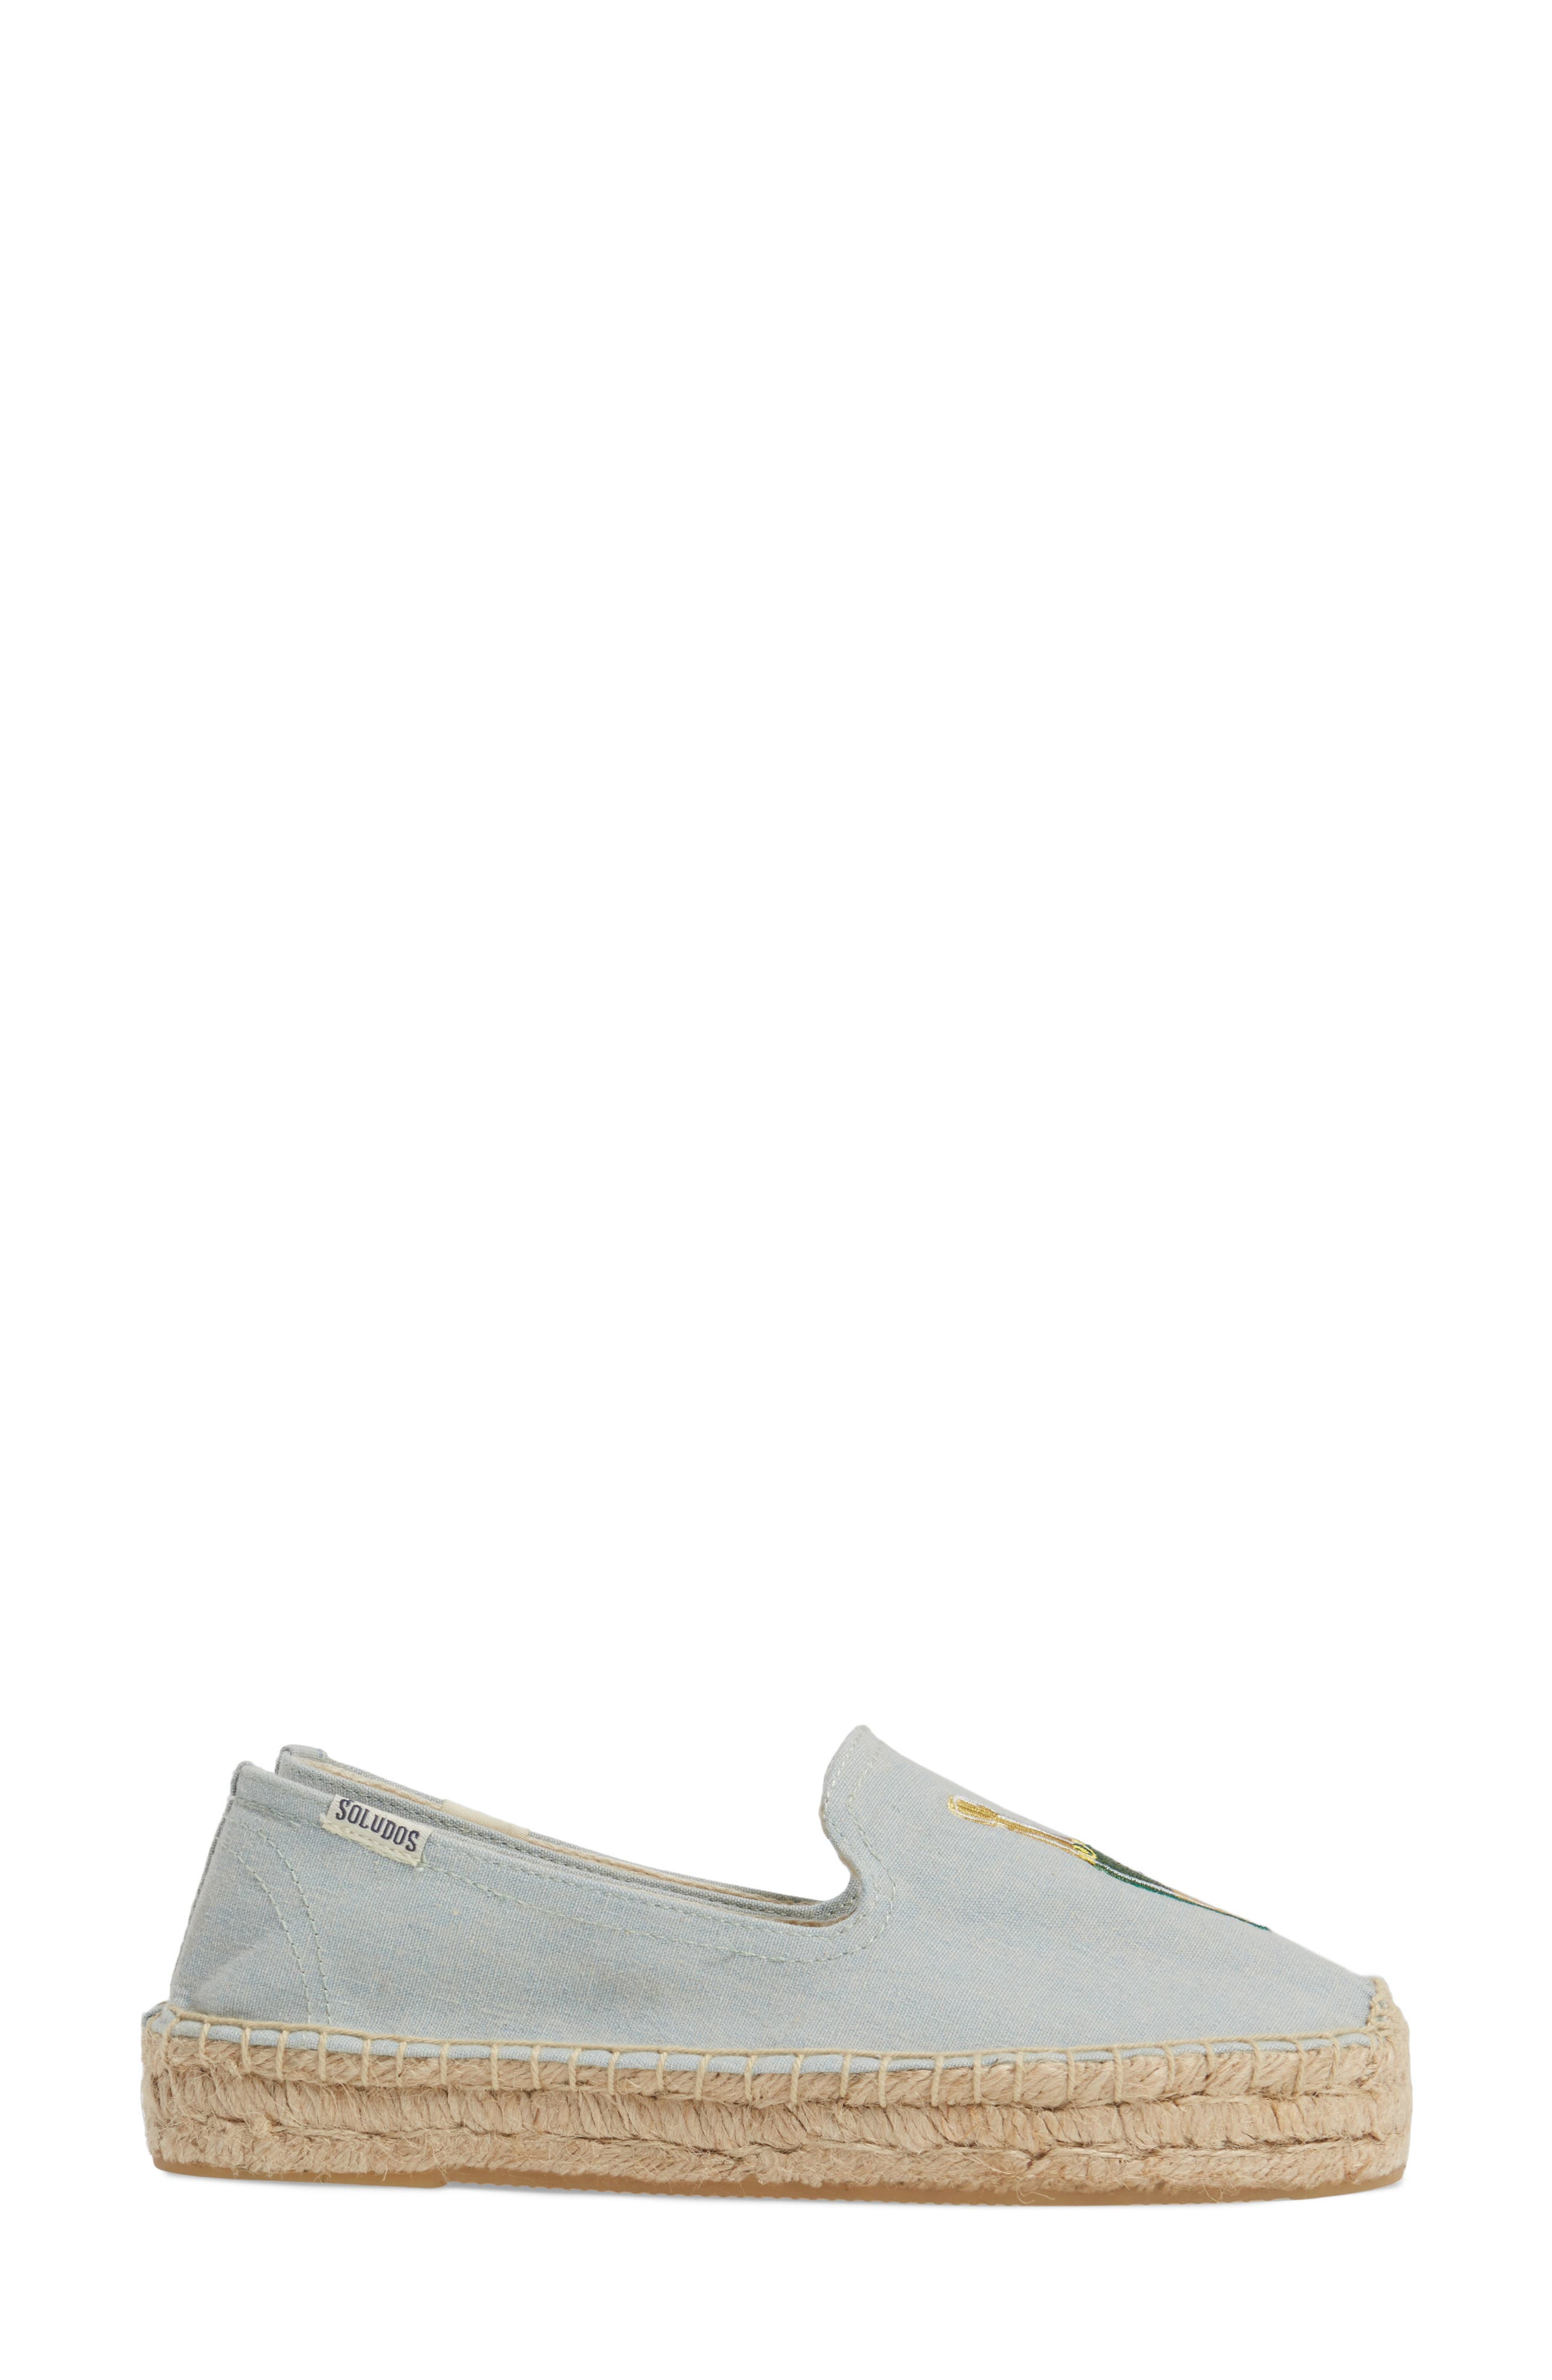 SOLUDOS,                             Mimosa Embroidered Platform Espadrille,                             Alternate thumbnail 3, color,                             420